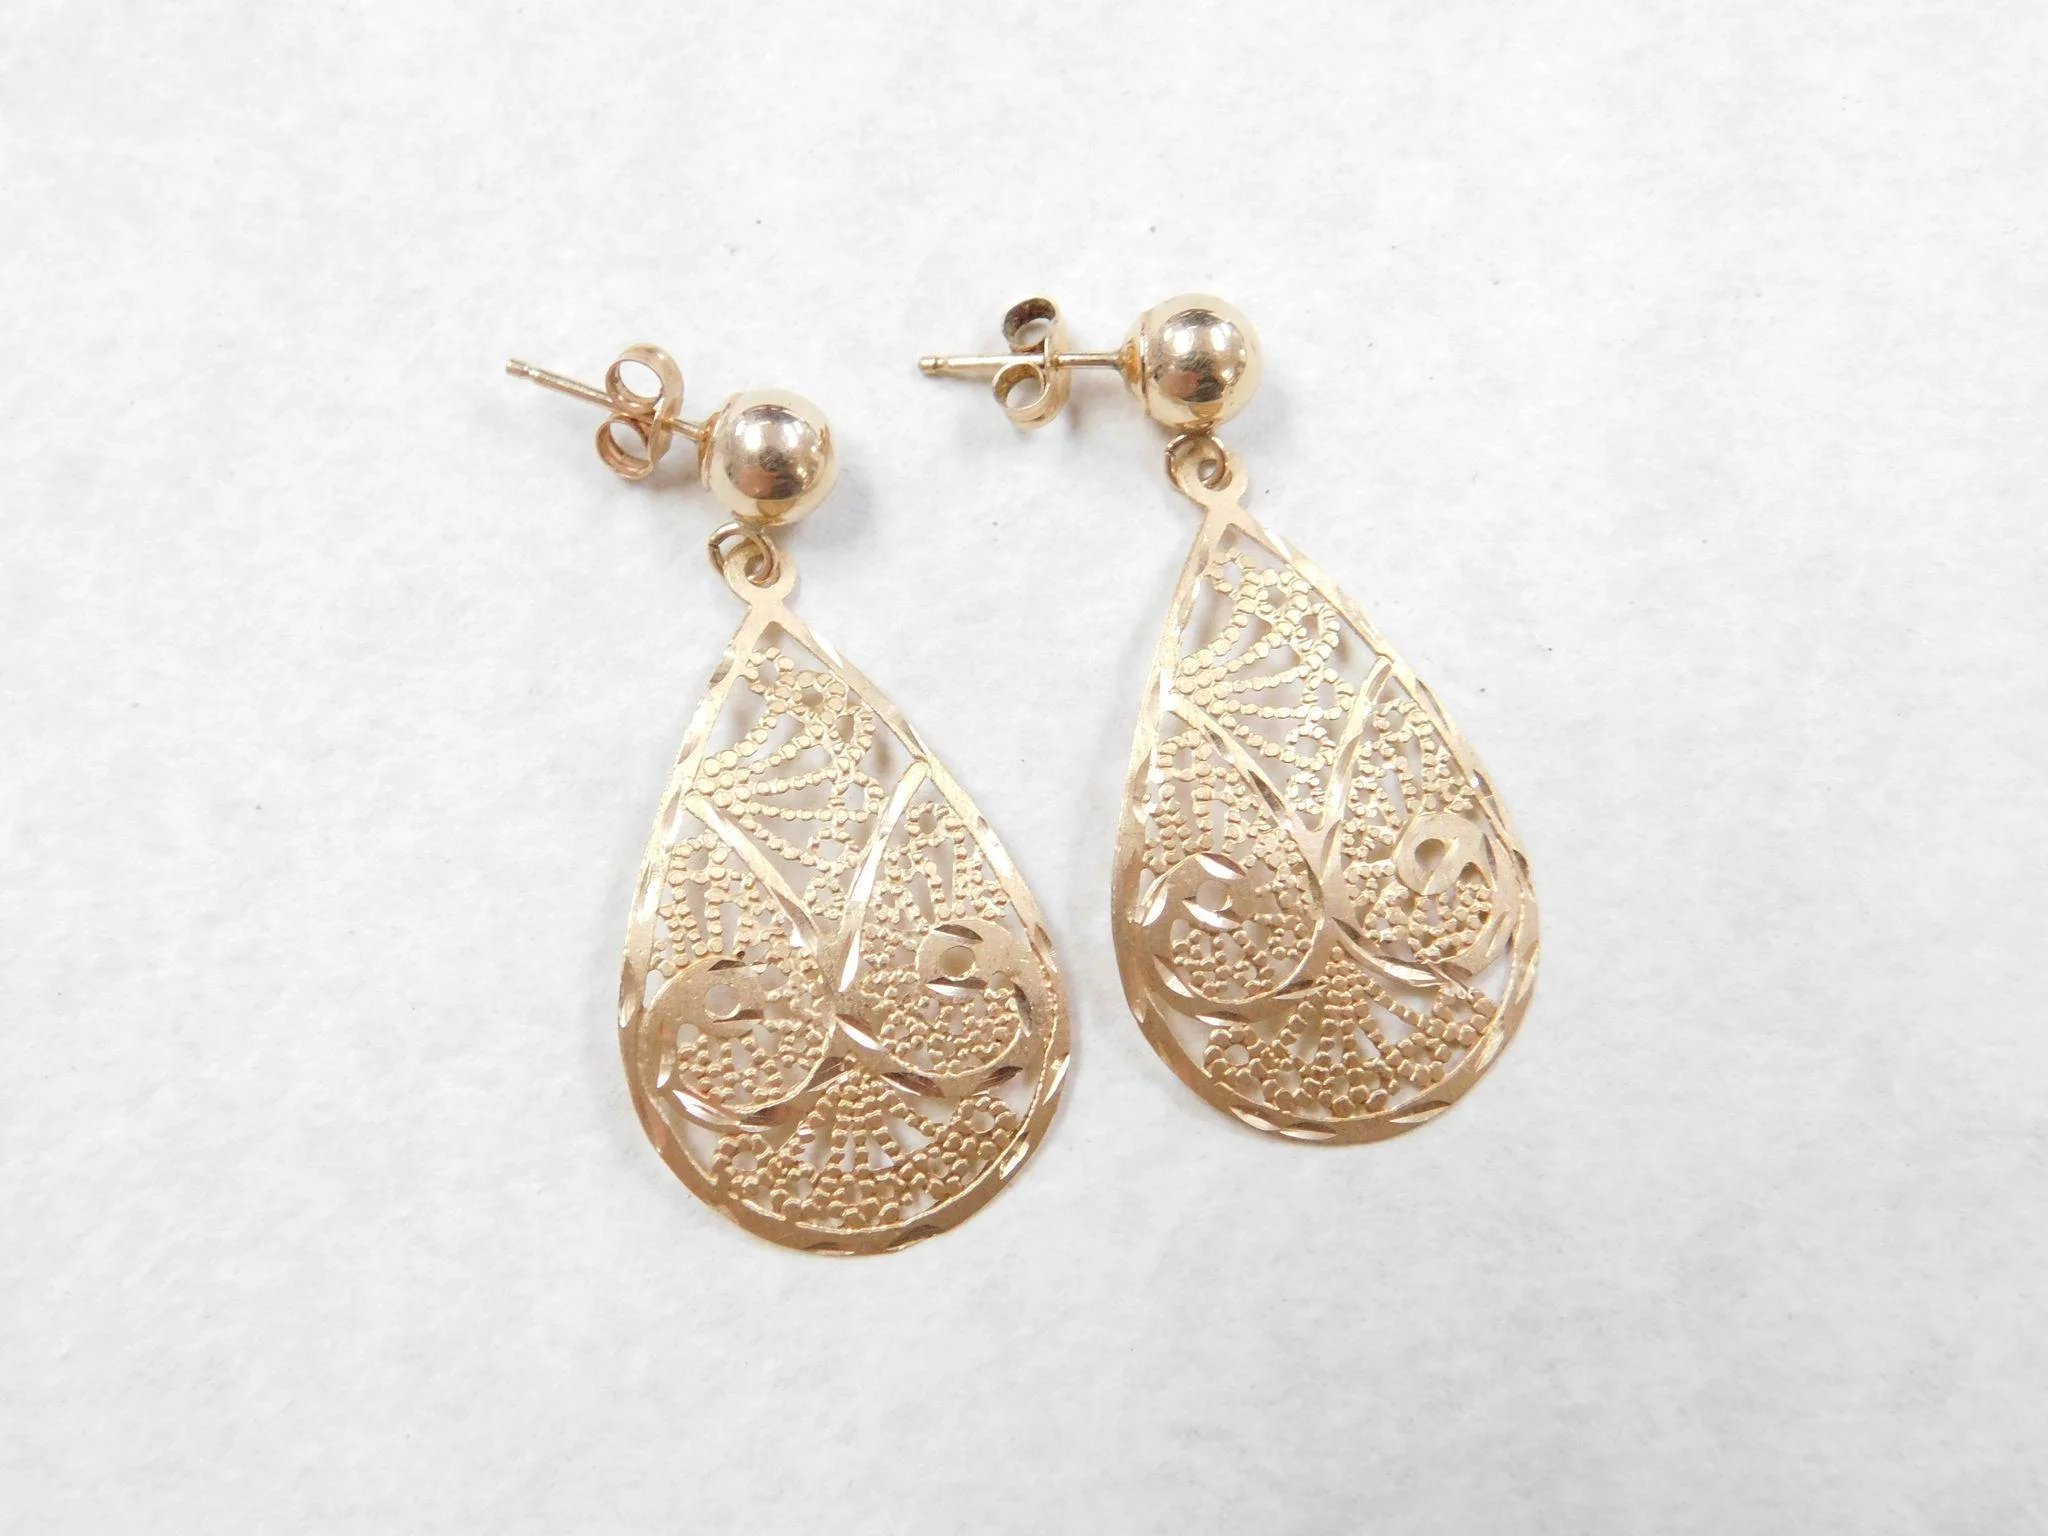 product filigree lightbox earrings jewelry jewelers diamond es master indianapolis